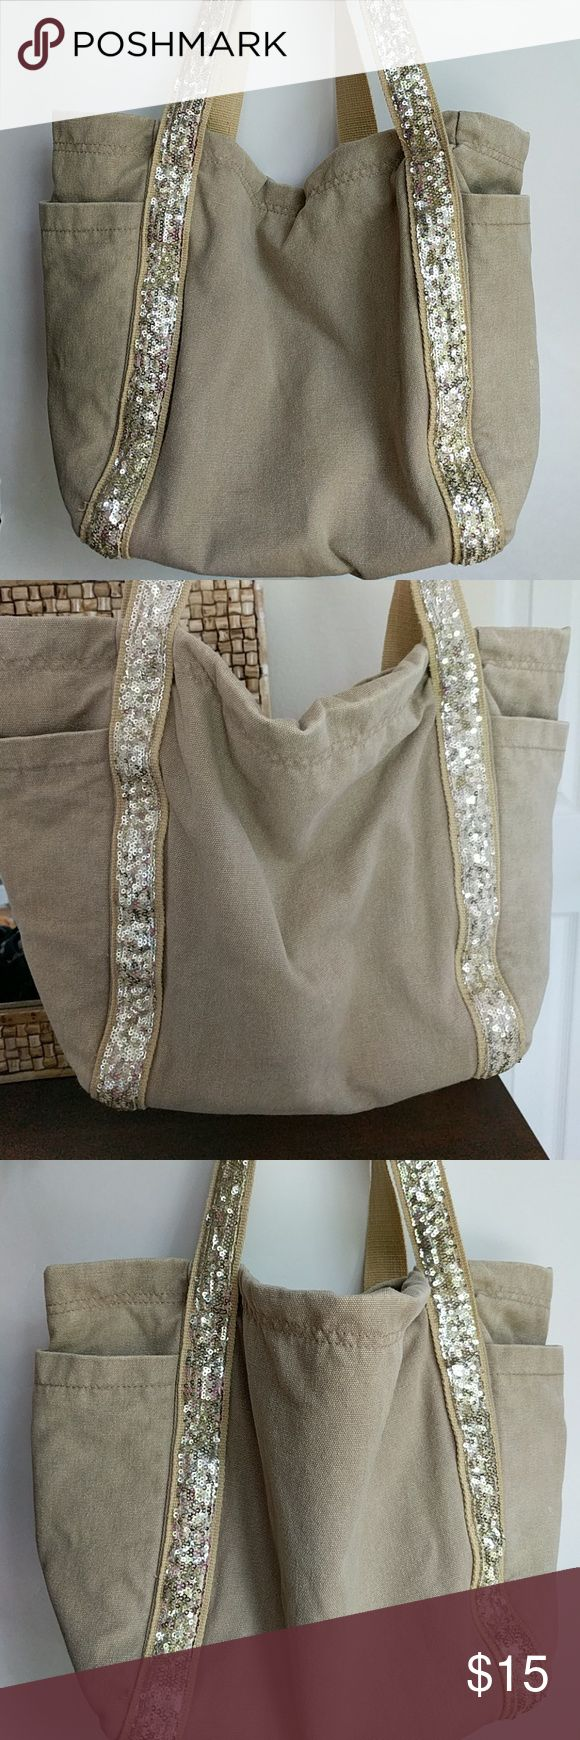 Gap Tote Khaki/light brown tote with gold sequin straps. Two large outside pockets on the sides and two small inside pockets. Gently used. GAP Bags Totes